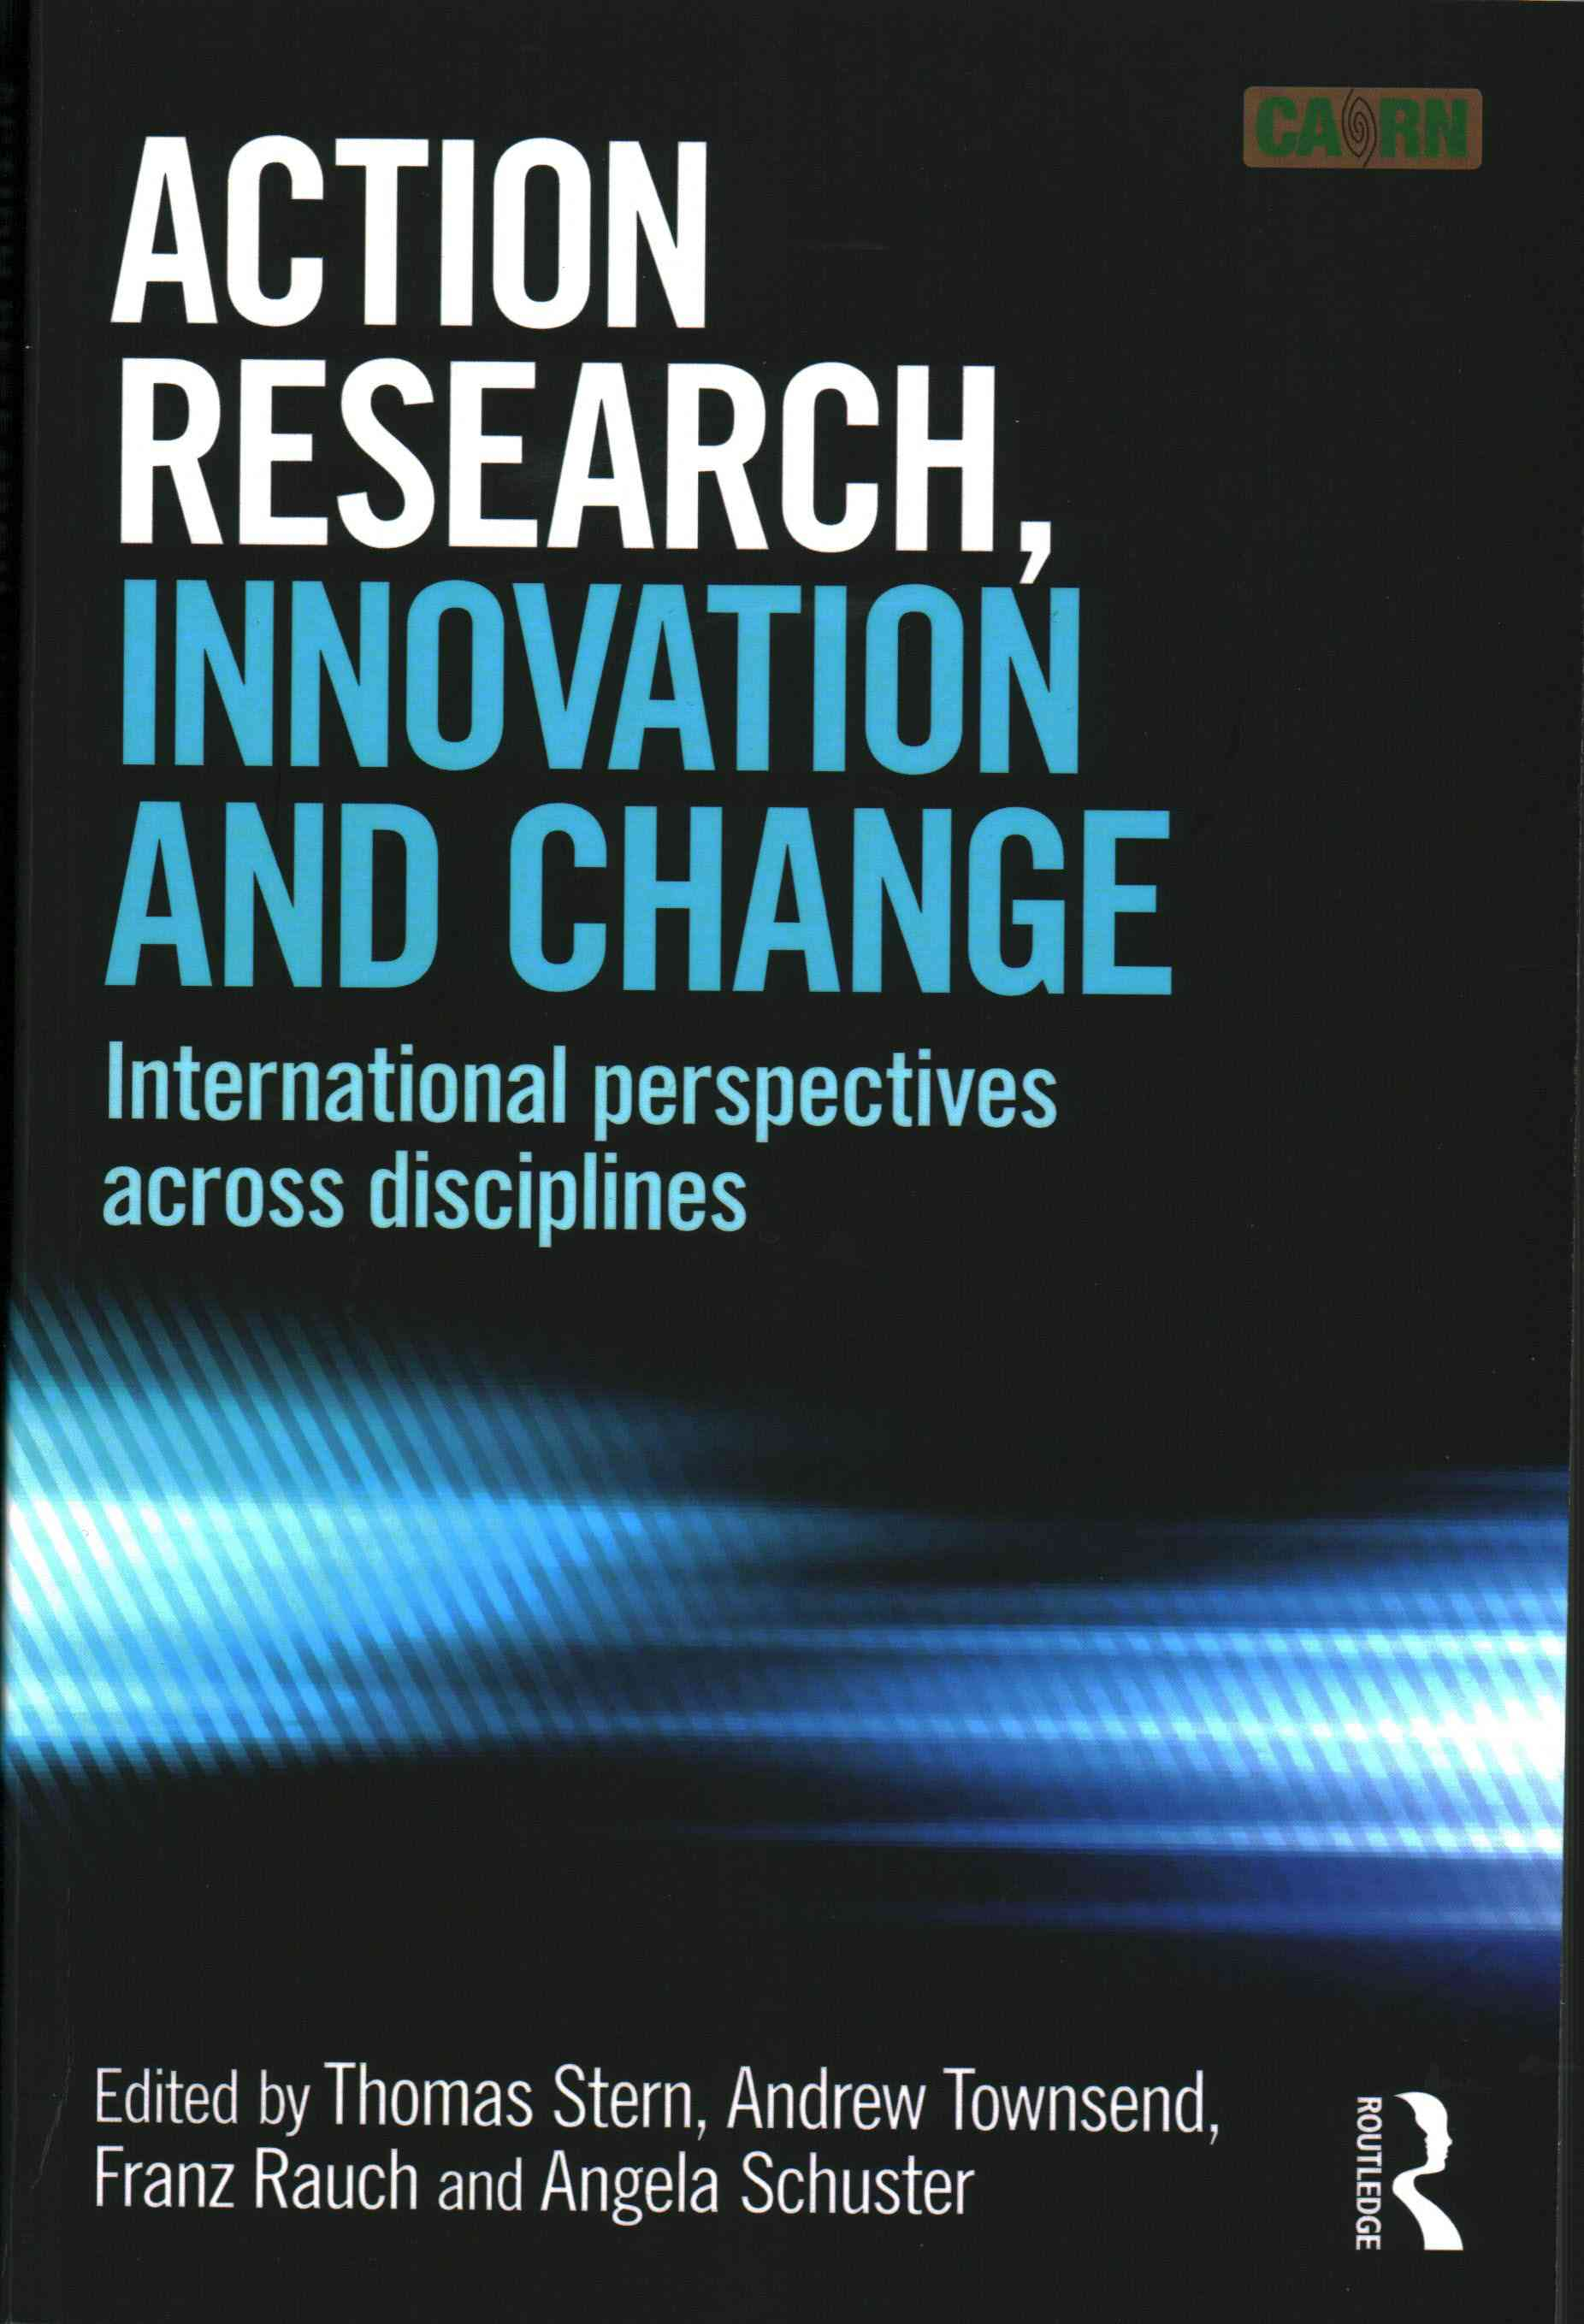 Action Research, Innovation and Change By Stern, Thomas (EDT)/ Rauch, Franz (EDT)/ Schuster, Angela (EDT)/ Townsend, Andrew (EDT)